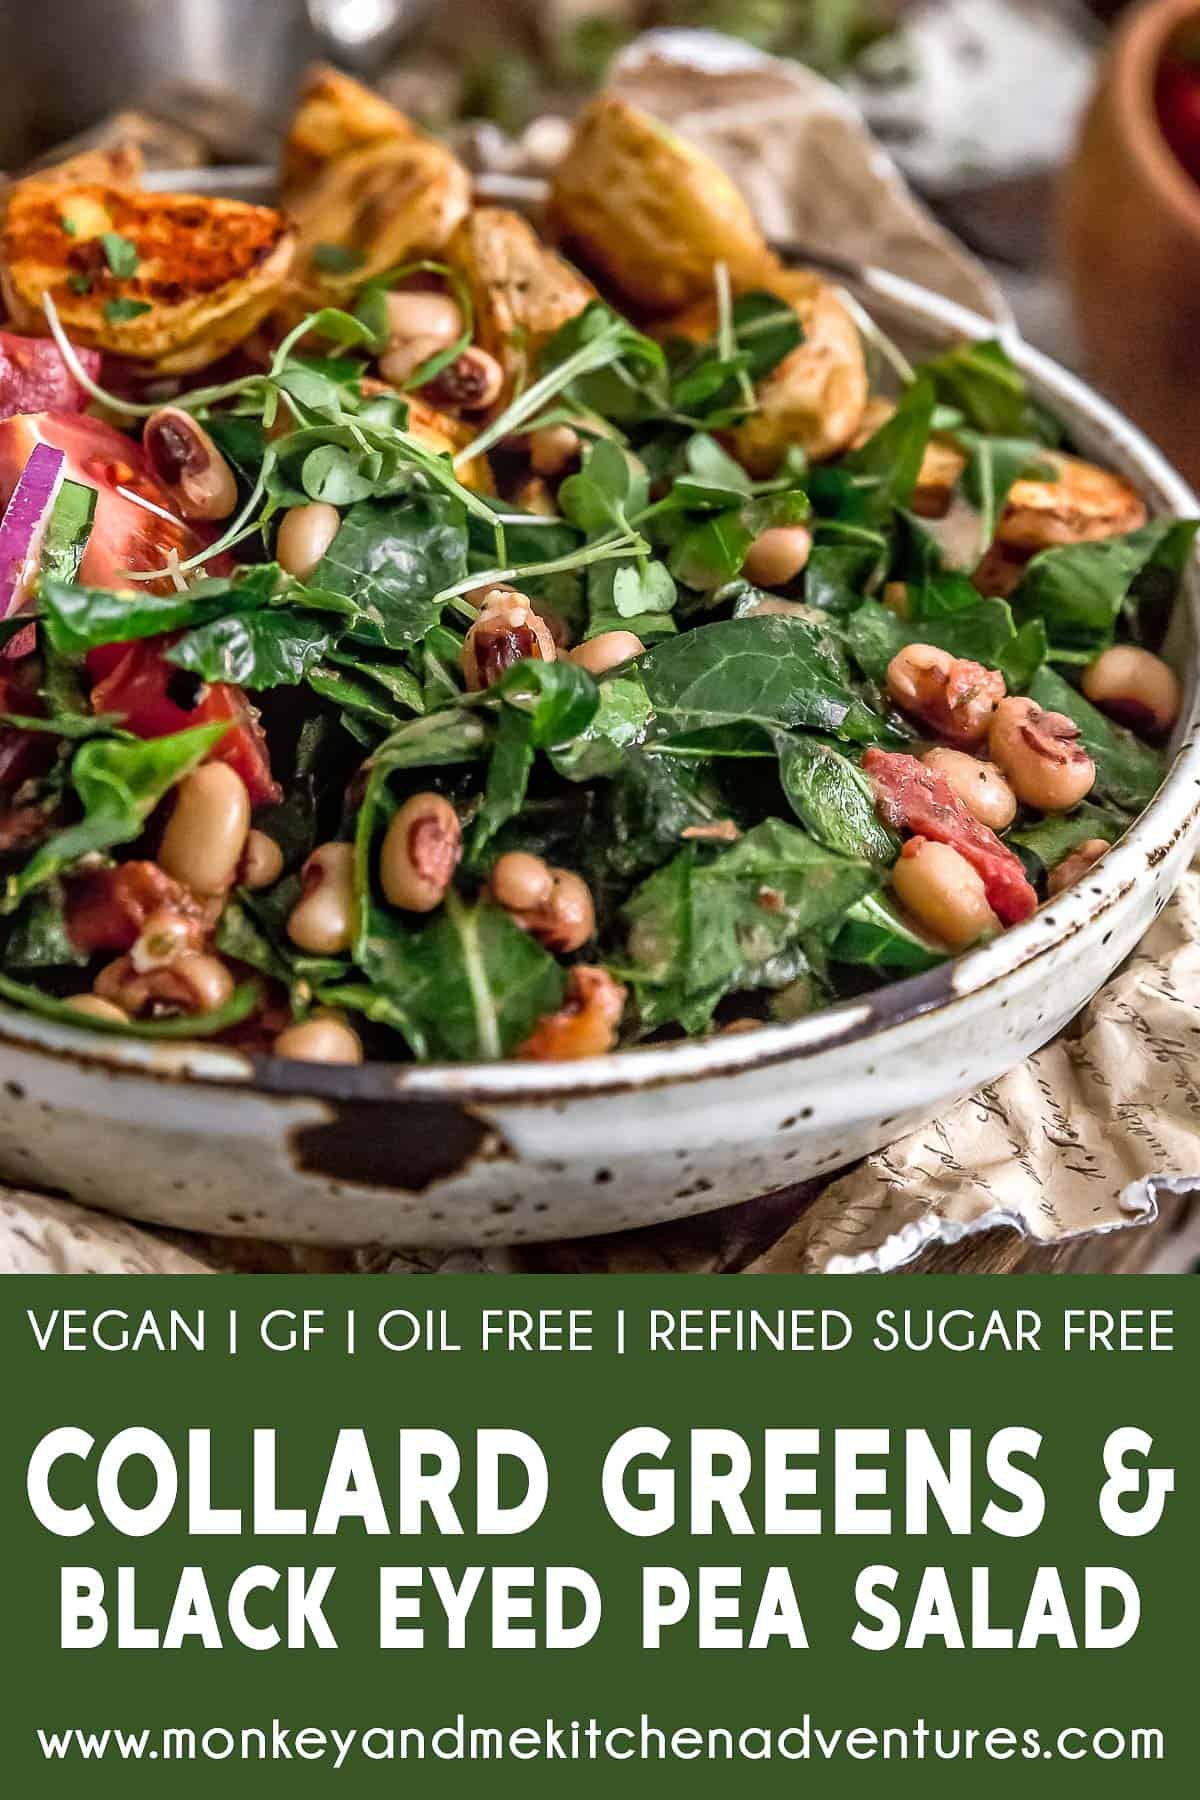 Collard Greens and Black-Eyed Pea Salad with text description